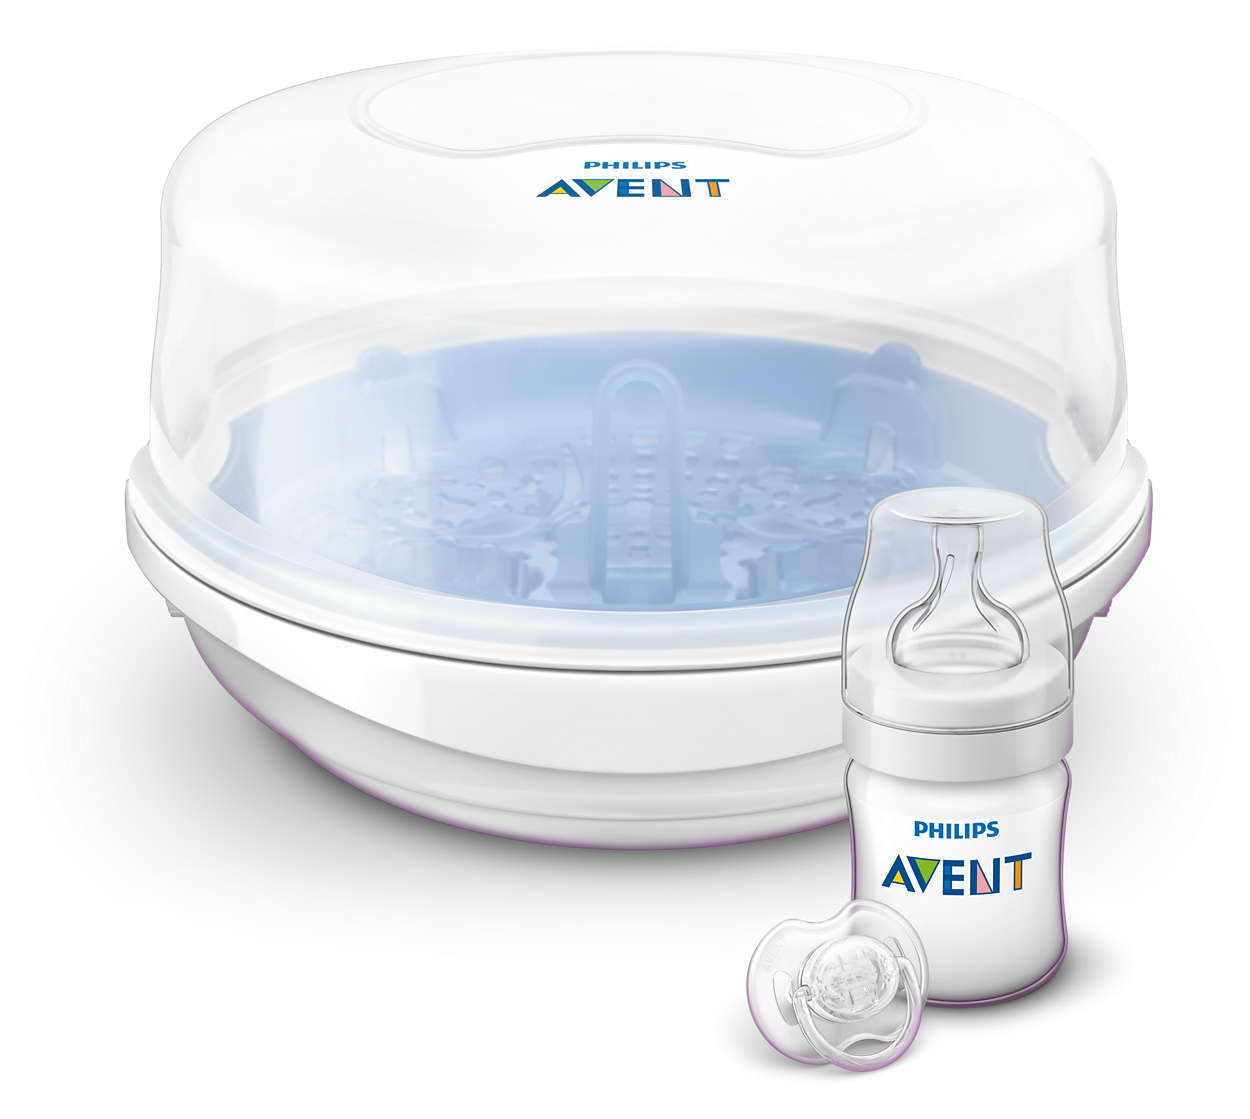 Philips avent microwave sterilizer starter set scf271-02 user.